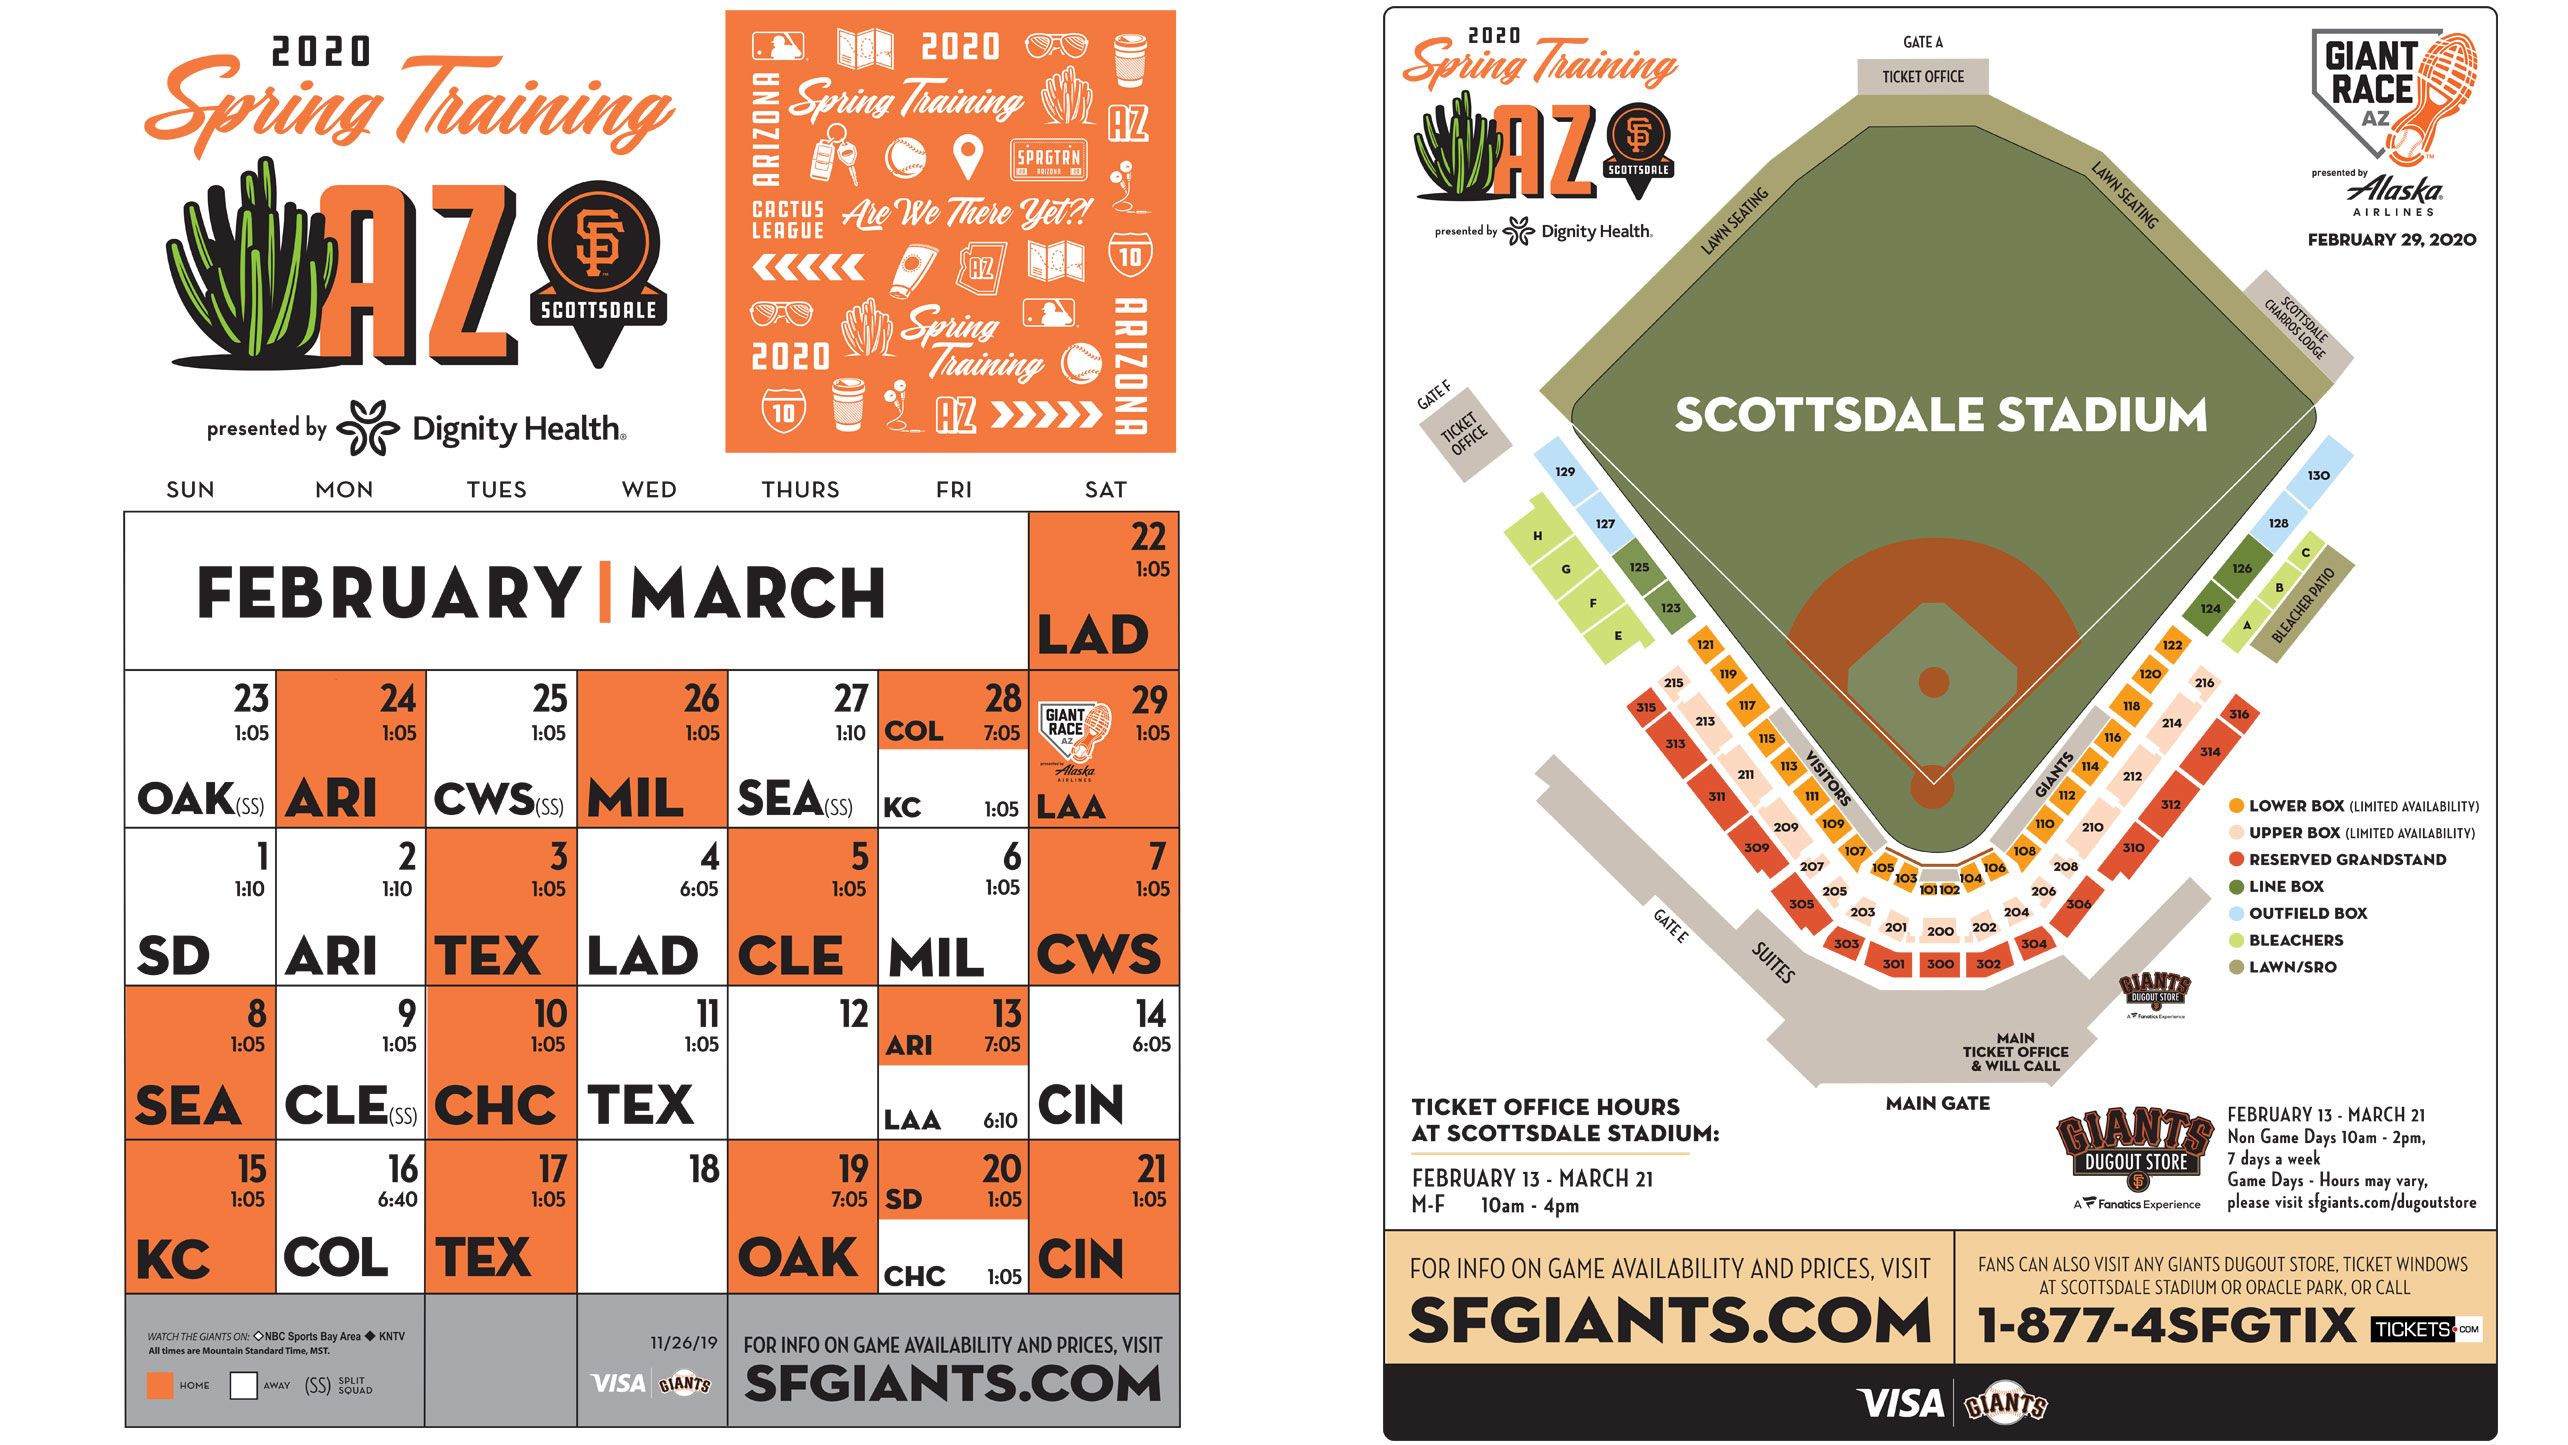 Sf Giants Schedule 2020 Printable.Spring Training Printable Schedule San Francisco Giants